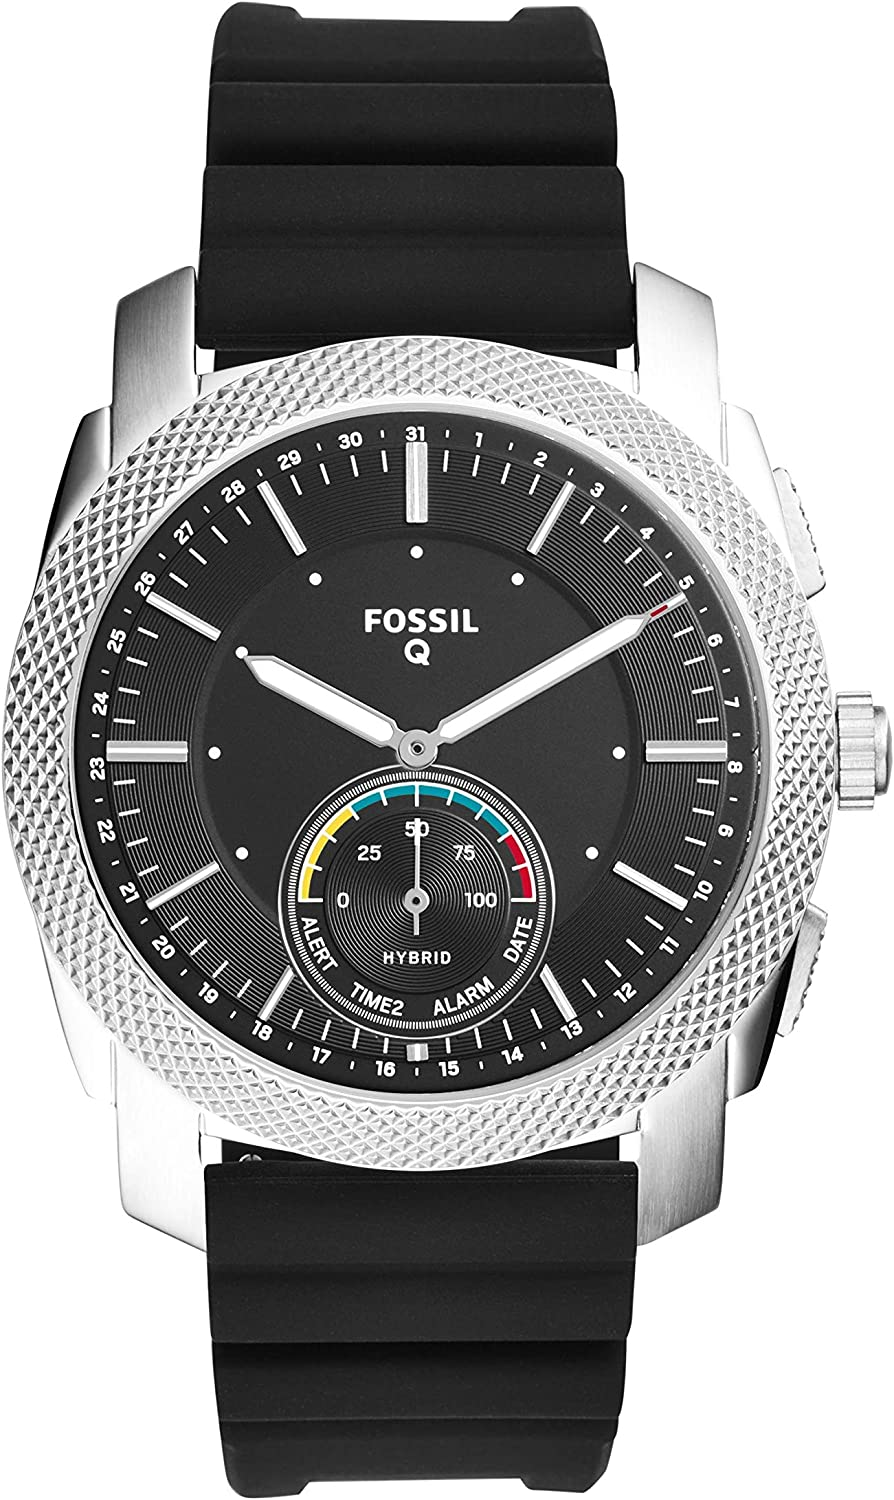 Fossil Q Men s Machine Black Silicone Hybrid Smartwatch FTW1164